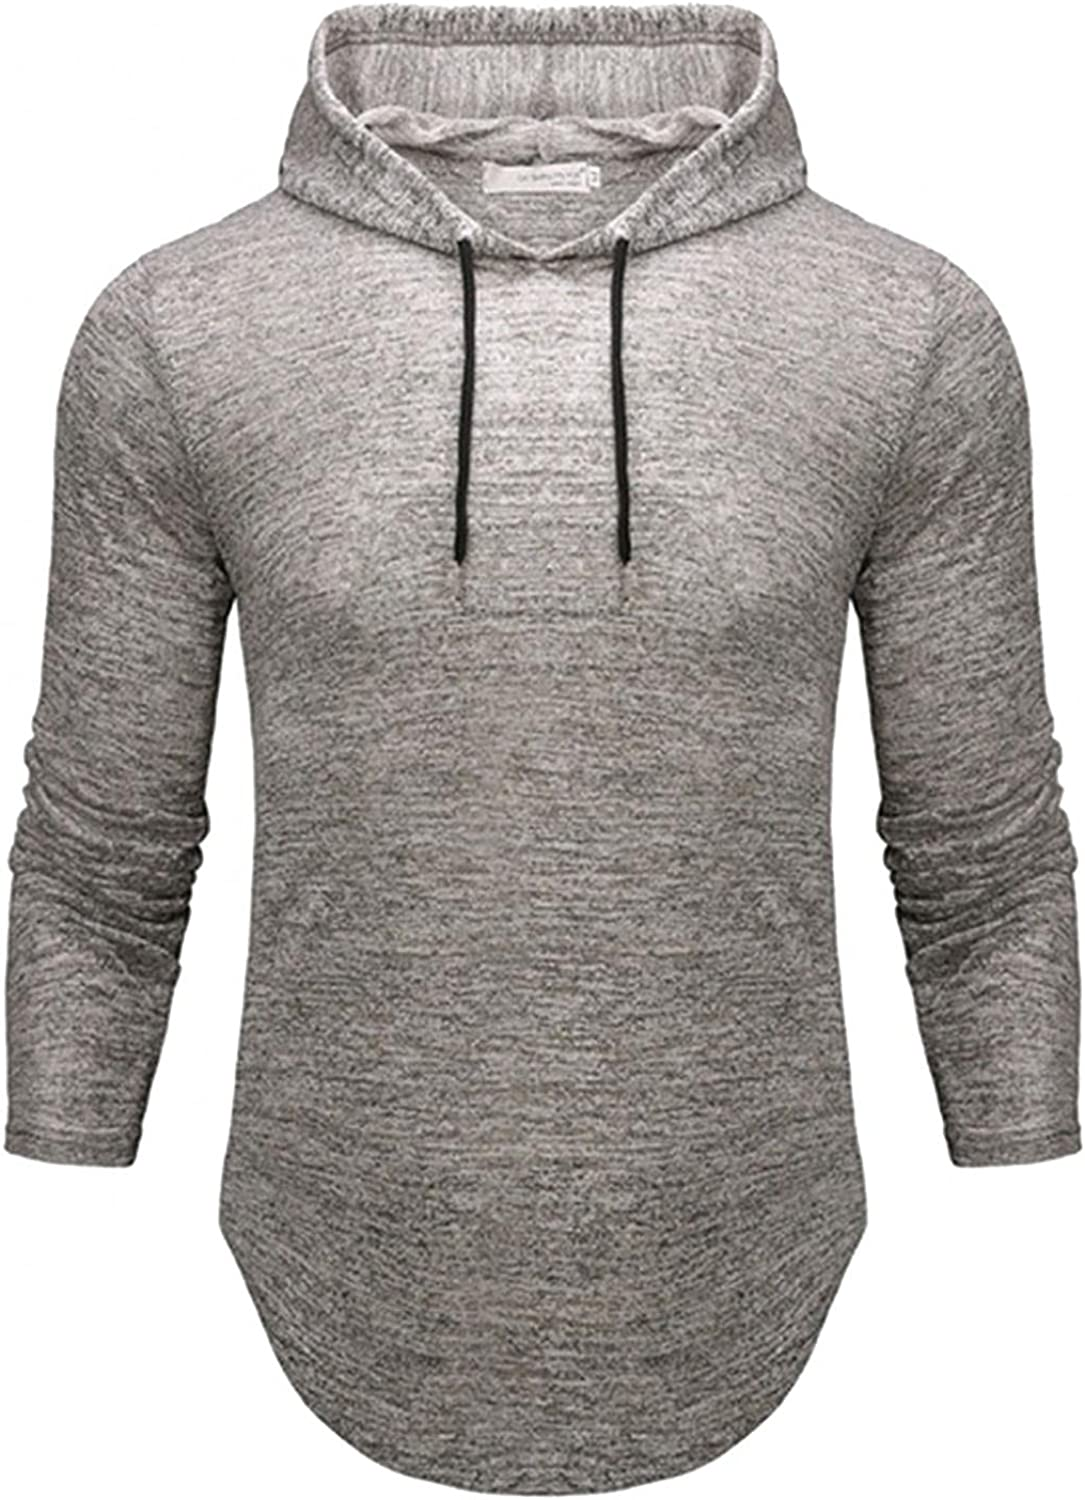 Hoodies for Men Men's Fashion Solid Color Top Hooded Casual Long Sleeve Drawstring Fashion Sweatshirt And Hoodies Blouses